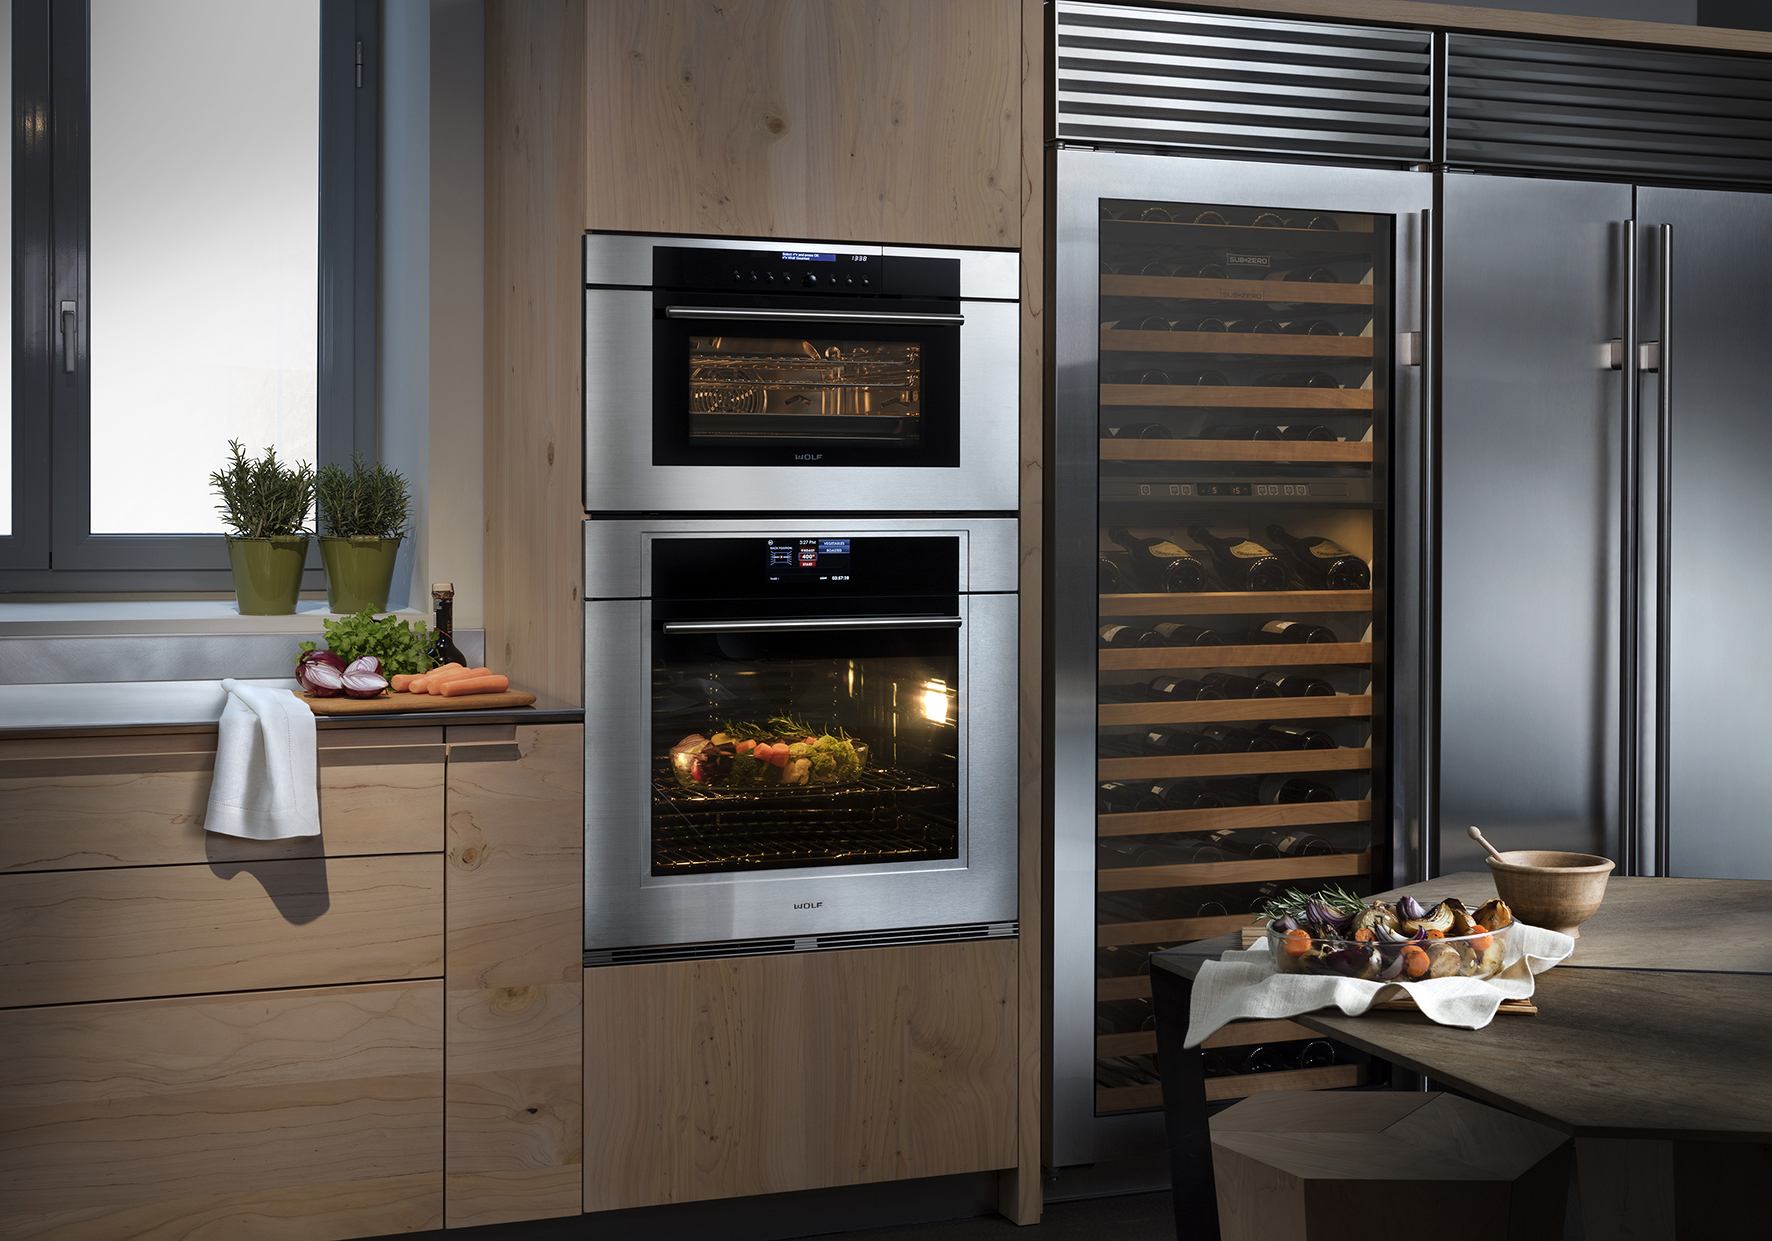 Toncelli, Historical Tuscan Kitchen Producer And Frigo 2000, The Italian  Distributor Of High End Home Appliances Brands (like Wolf, Sub Zero, ...